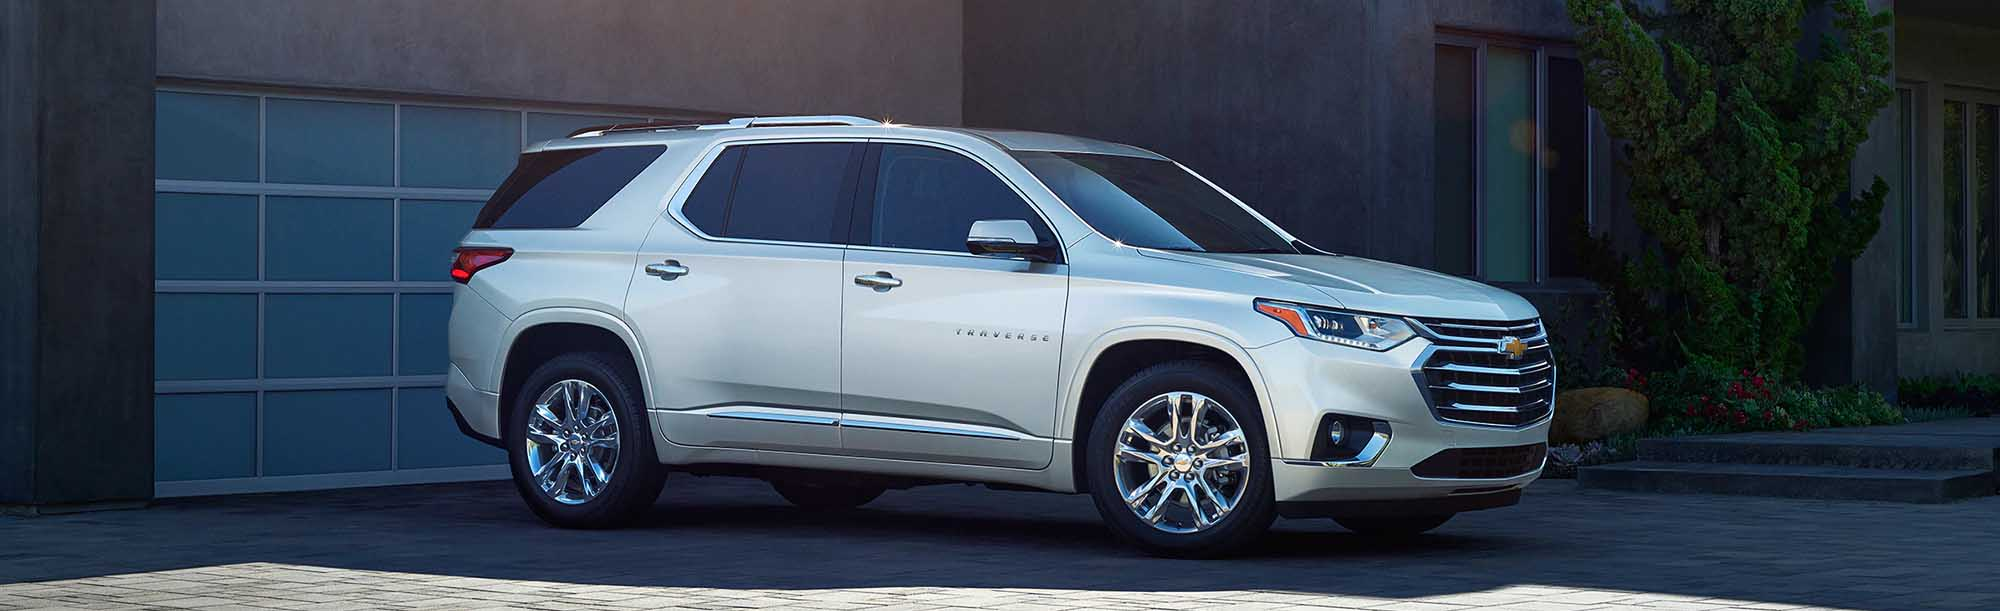 The 2020 Chevy Traverse Has Arrived At Our Costa Mesa, CA, Car Dealer